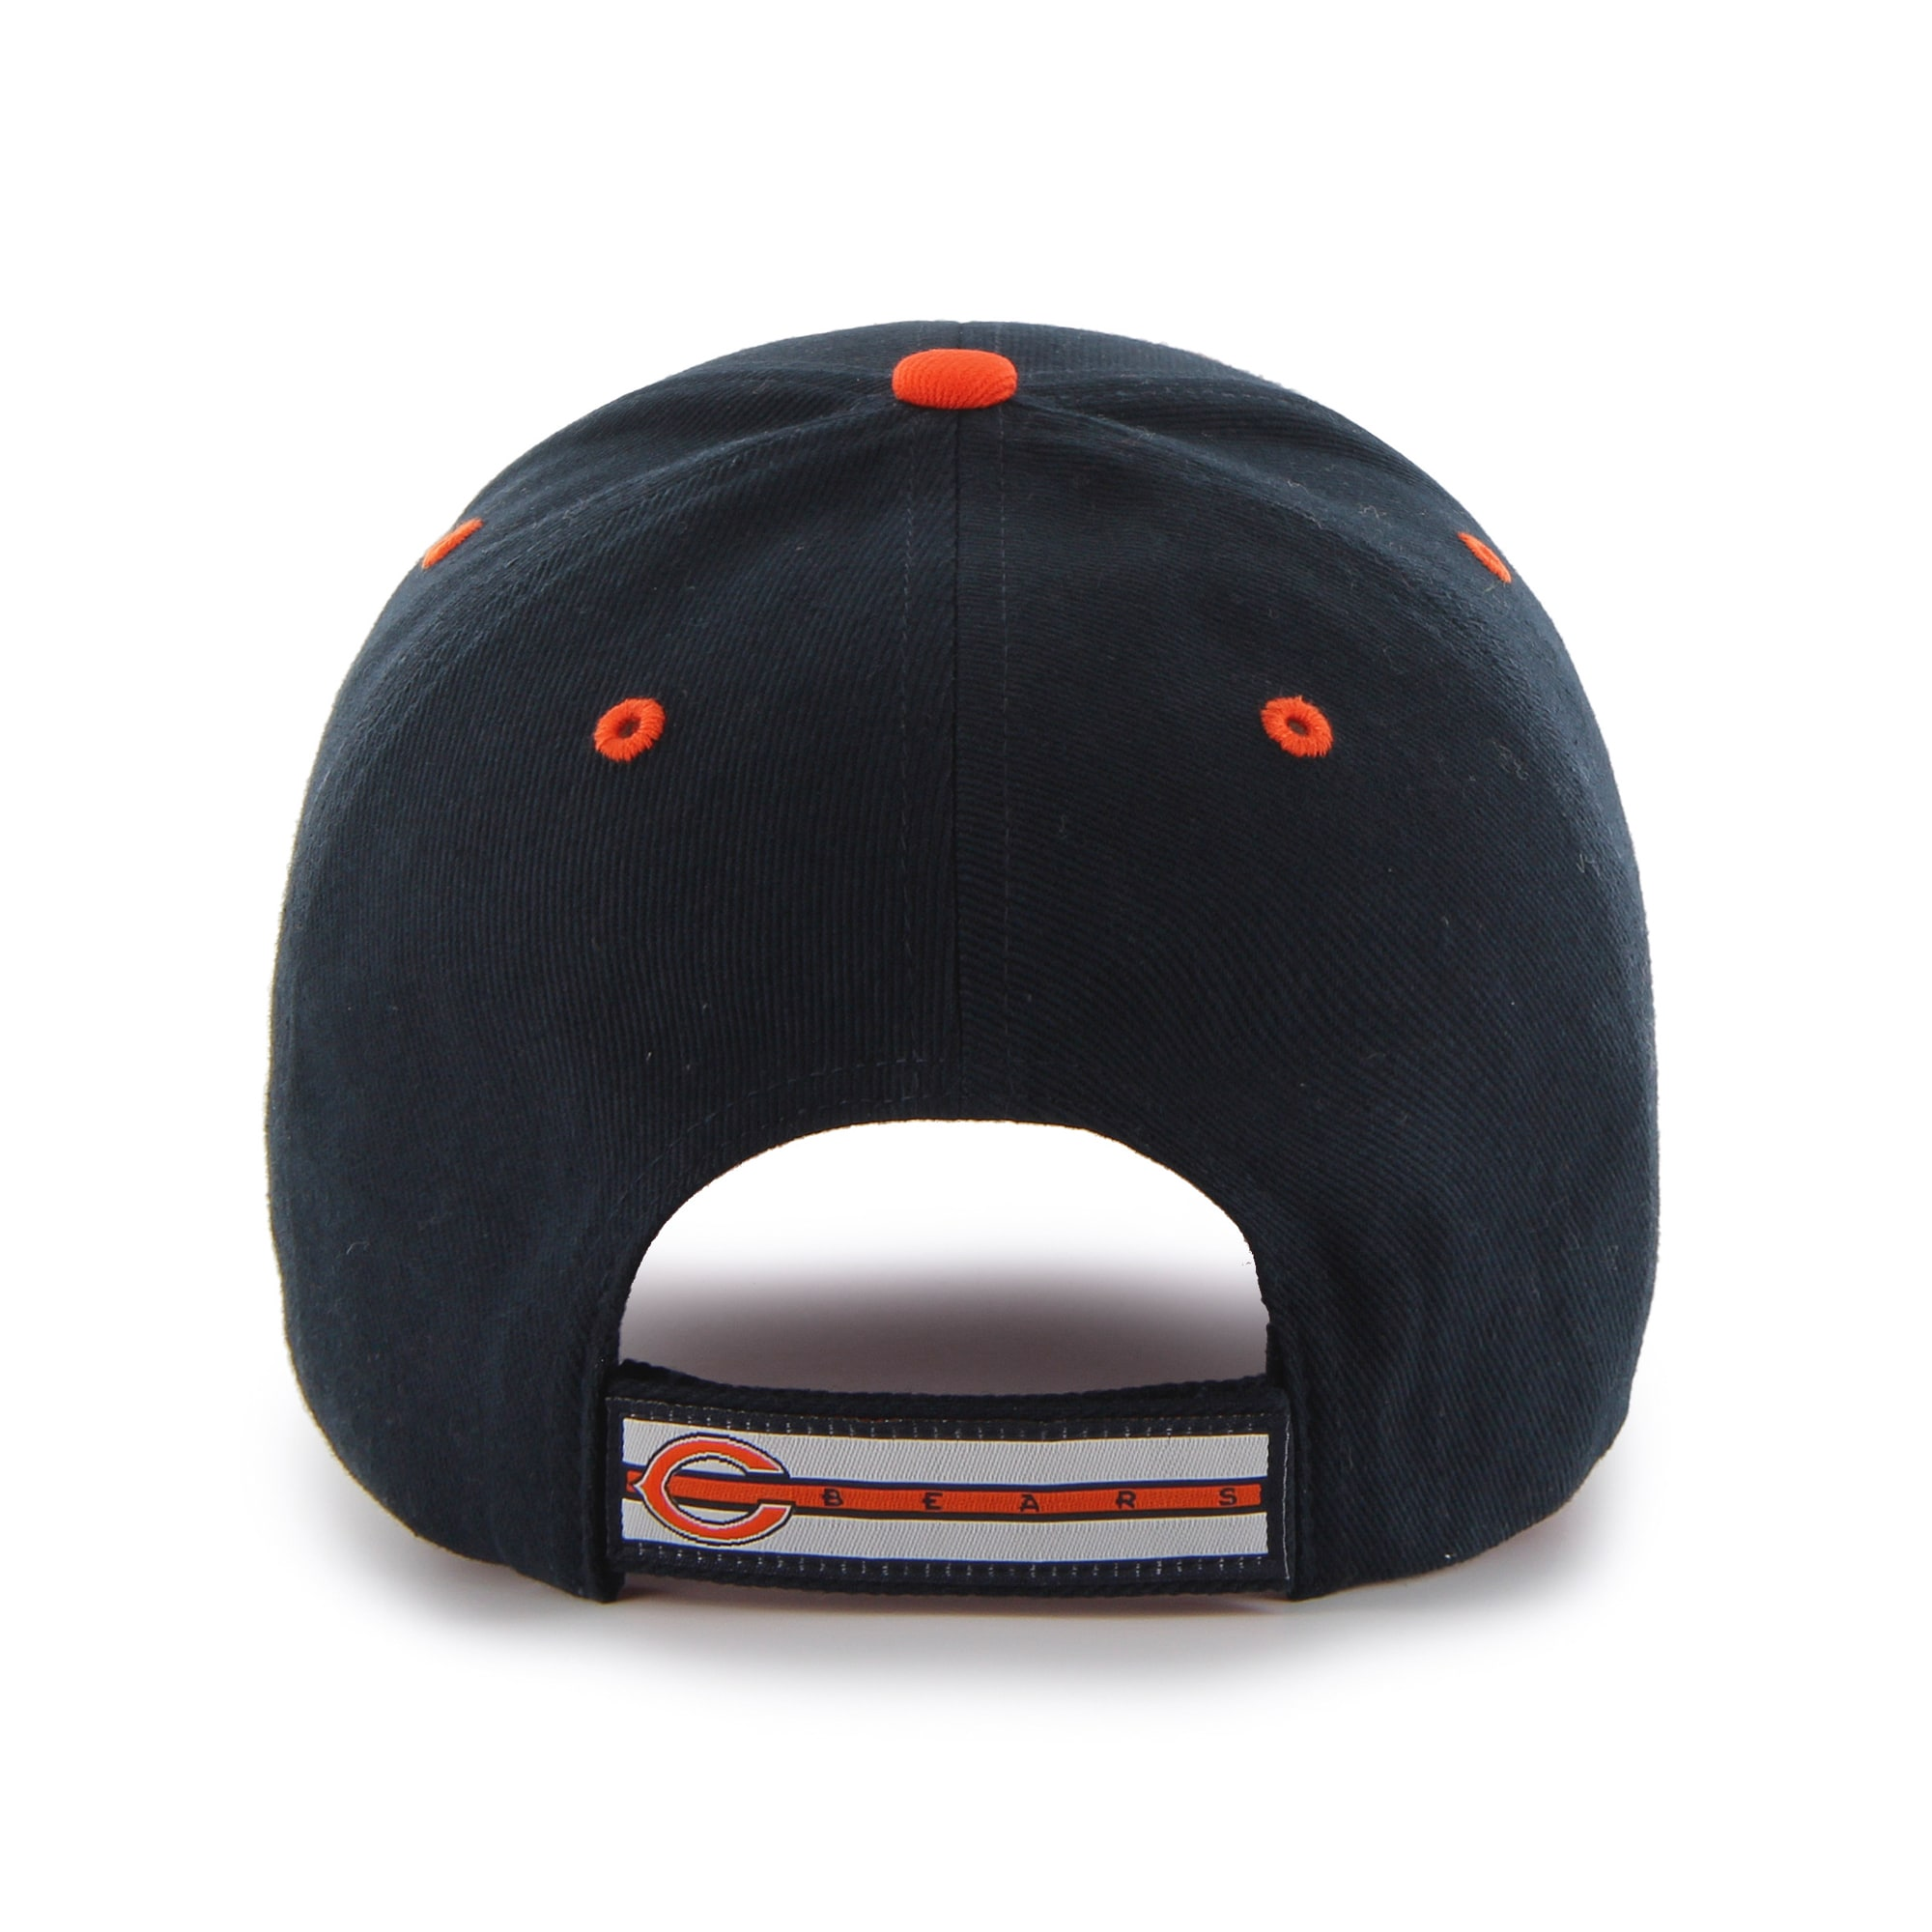 b10322dedcf Shop Chicago Bears NFL Youth Fit Money Maker Cap - Free Shipping On Orders  Over $45 - Overstock - 13058562